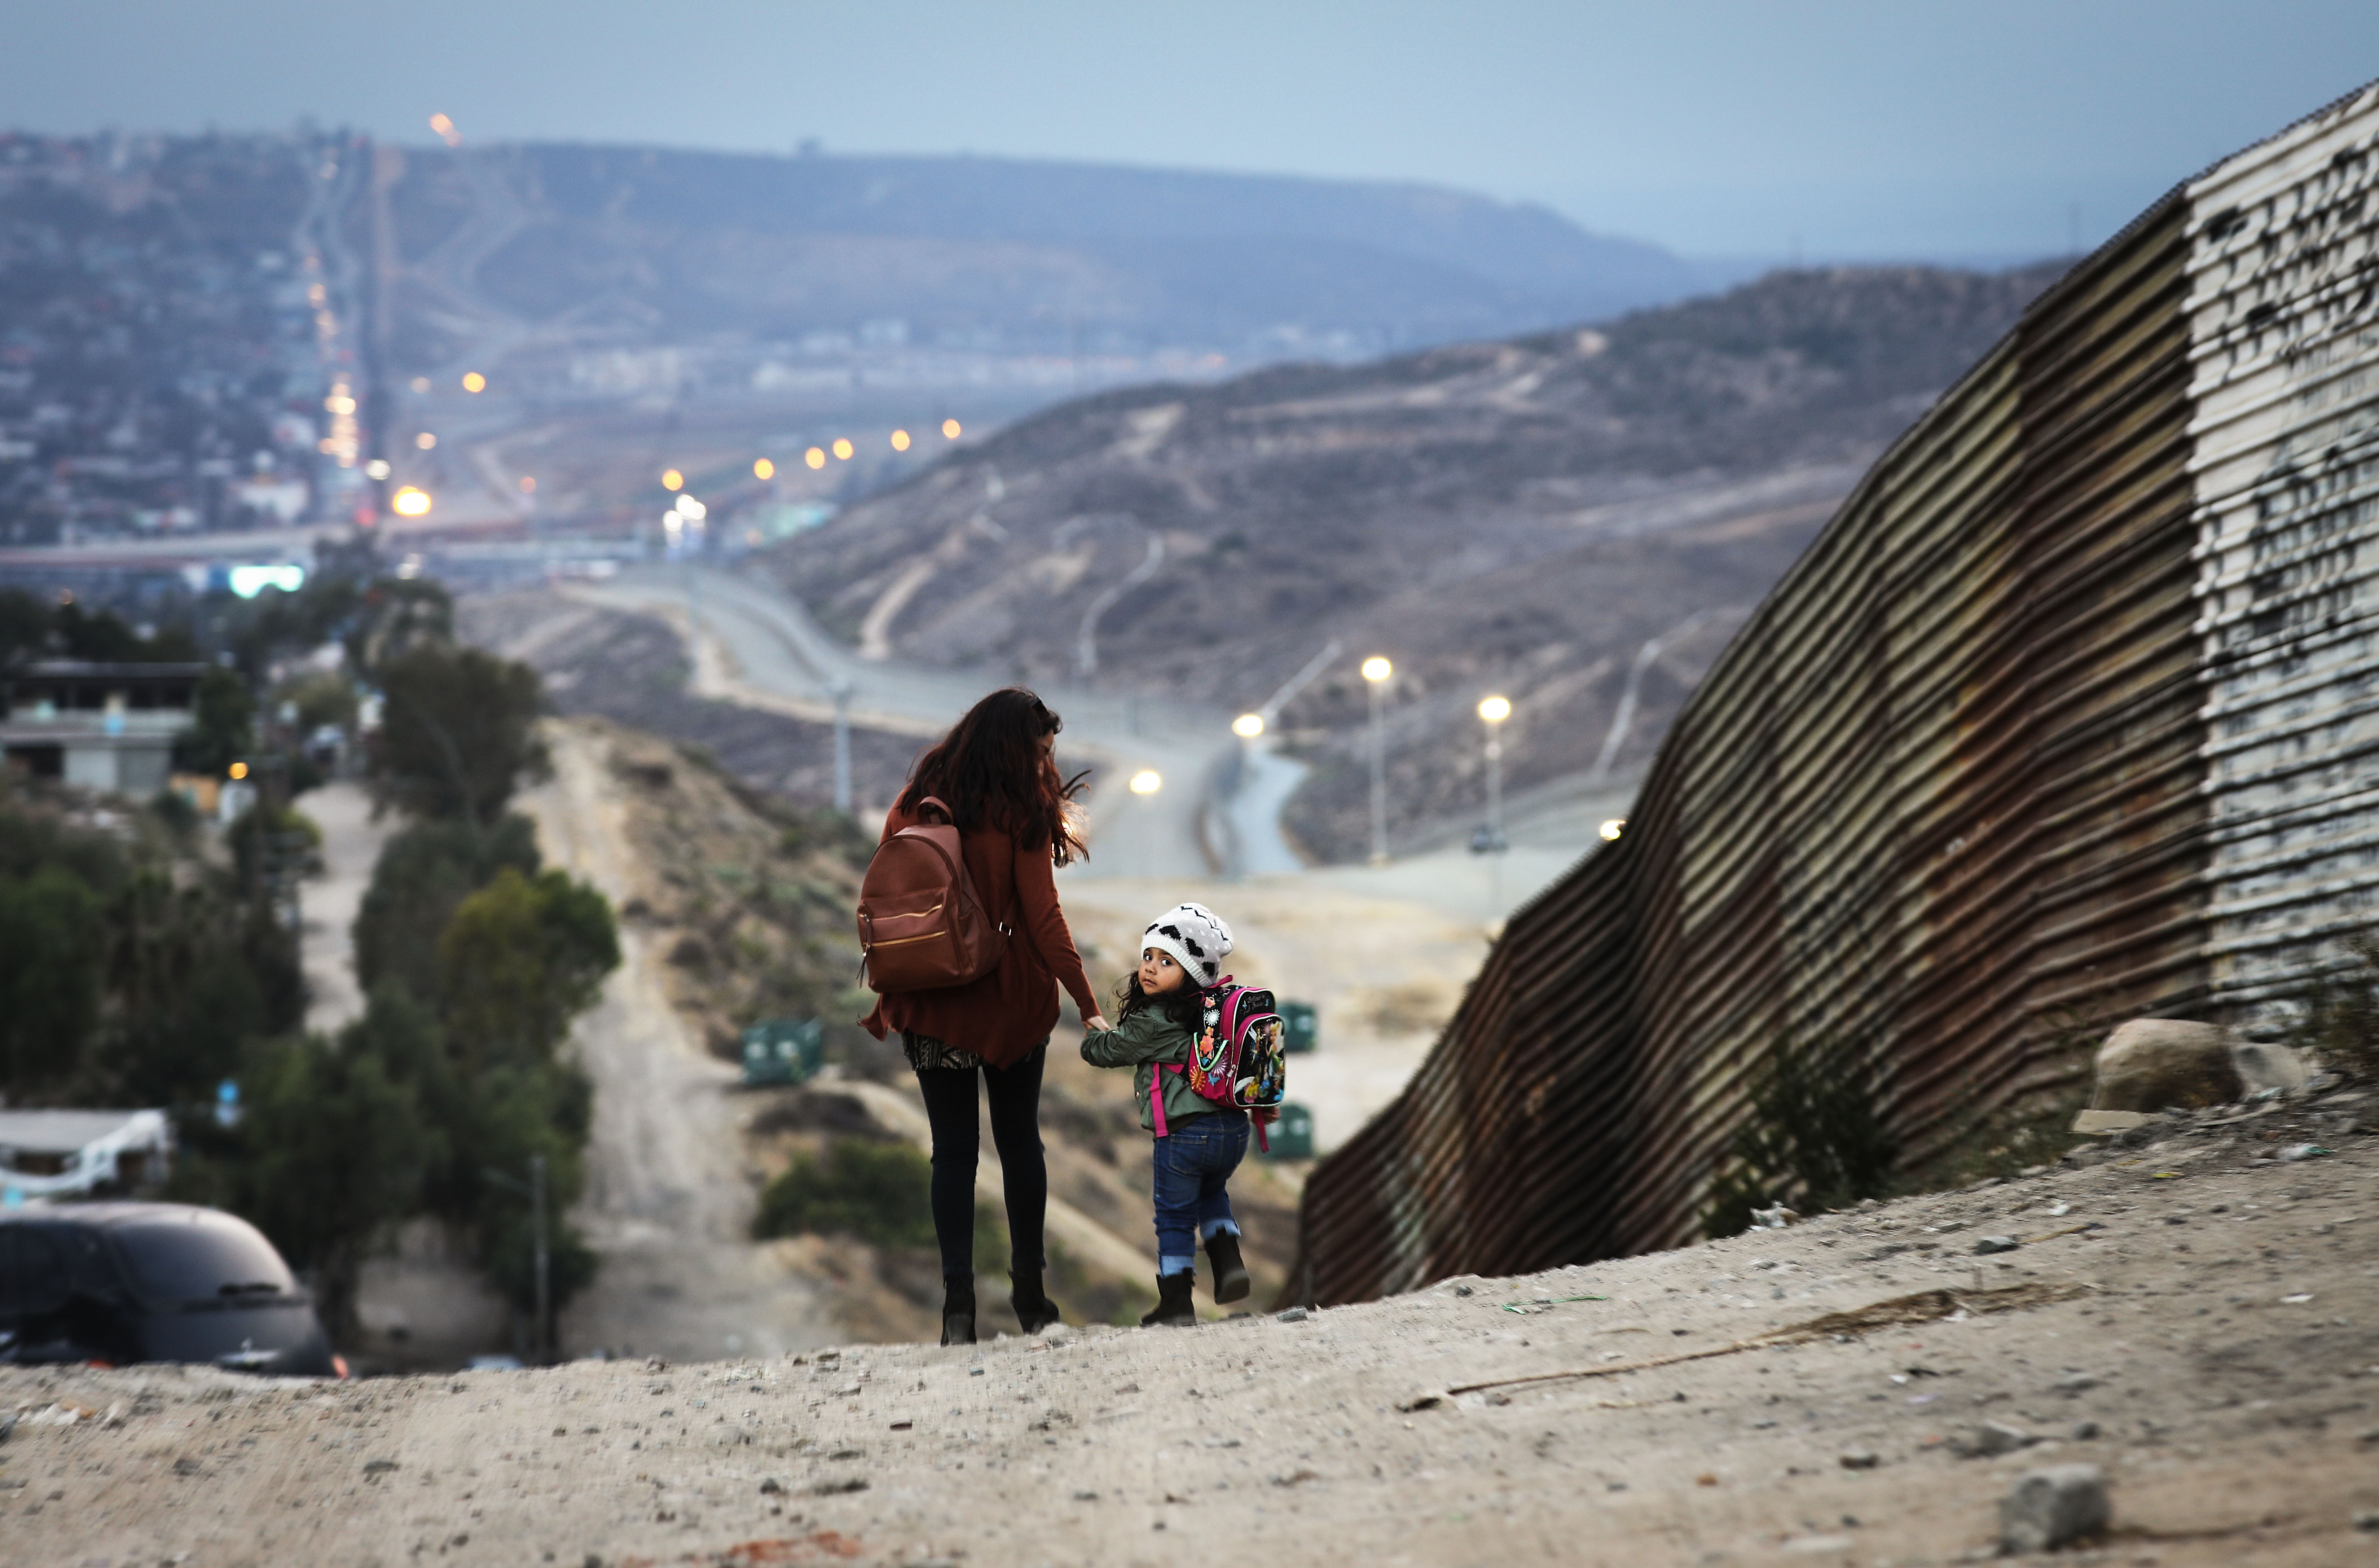 Local residents walk along the Mexico side of the U.S.-Mexico border on June 19, 2018 in Tijuana, Mexico ... (Photo by Mario Tama/Getty Images)